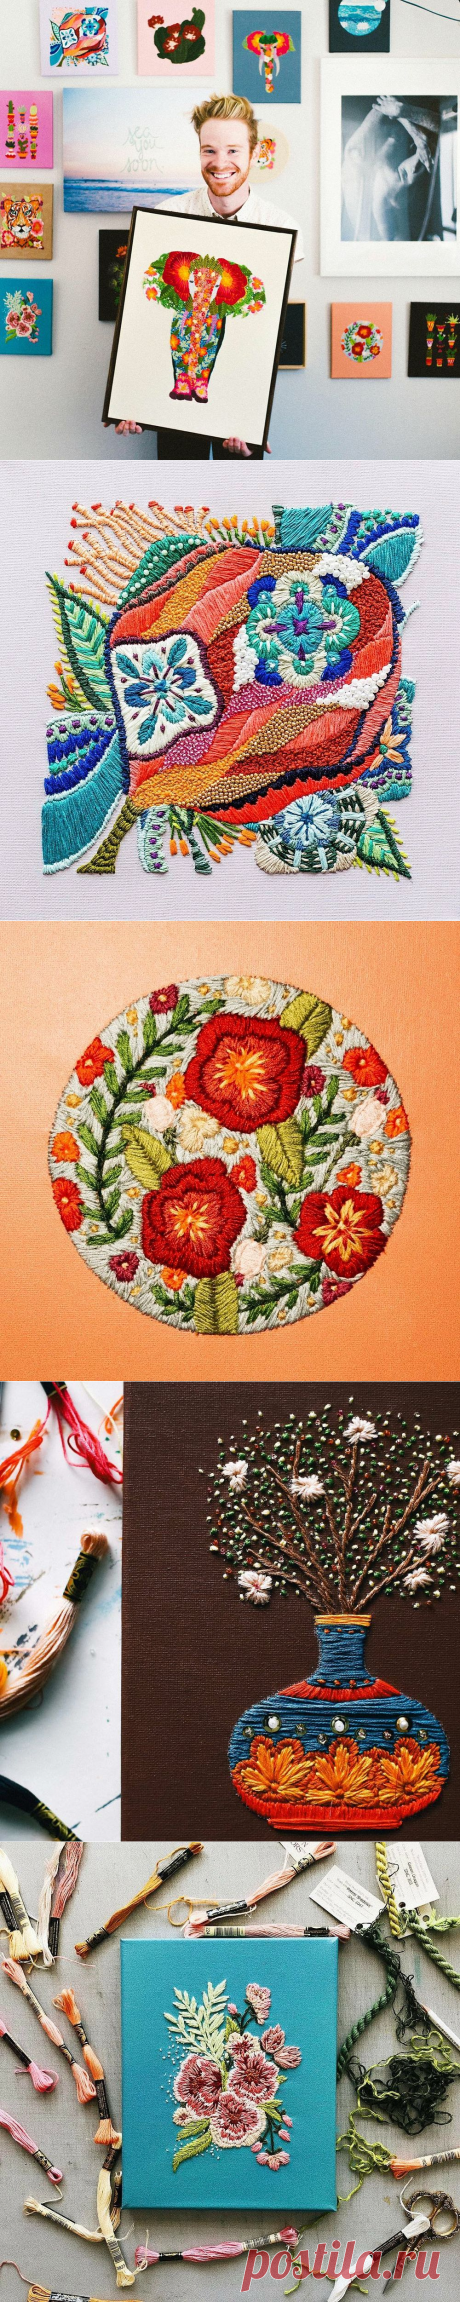 Flower paradise: bright embroidery of Walker Boyes